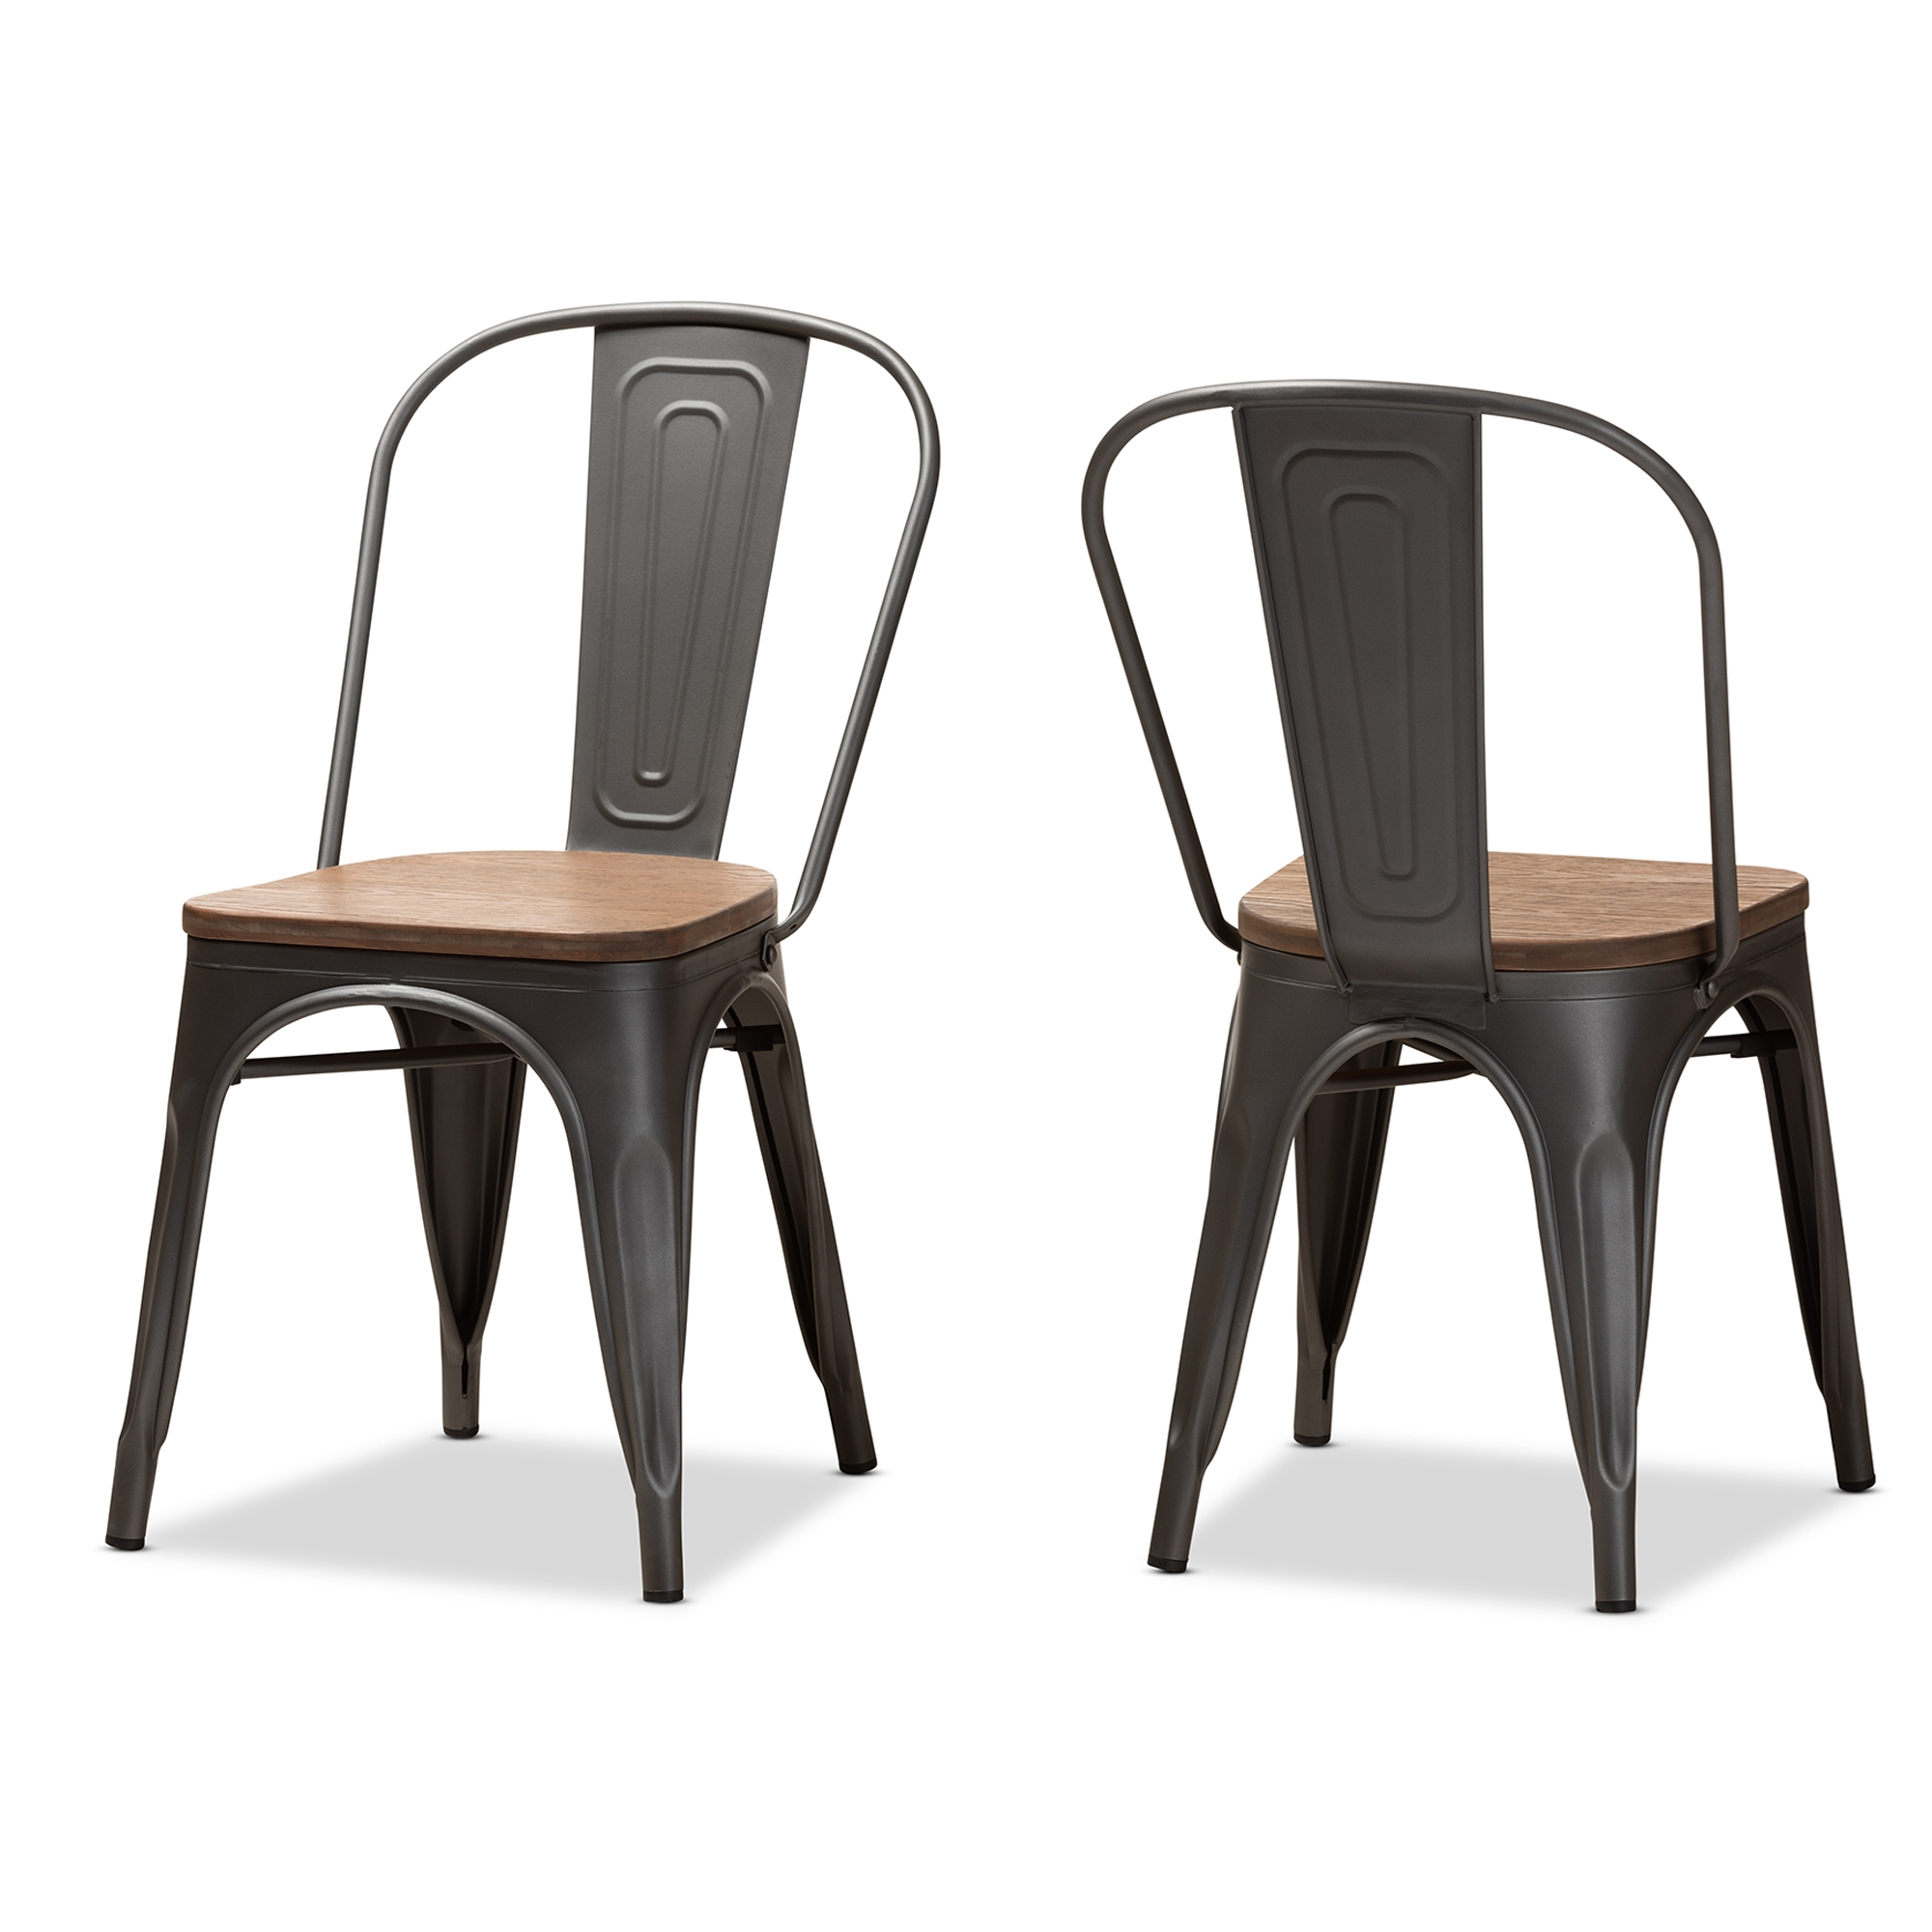 5e8d090179 Baxton Studio Henri Vintage Rustic Industrial Style Tolix-Inspired Bamboo  and Gun Metal-Finished Steel Stackable Dining Chair Set of 2